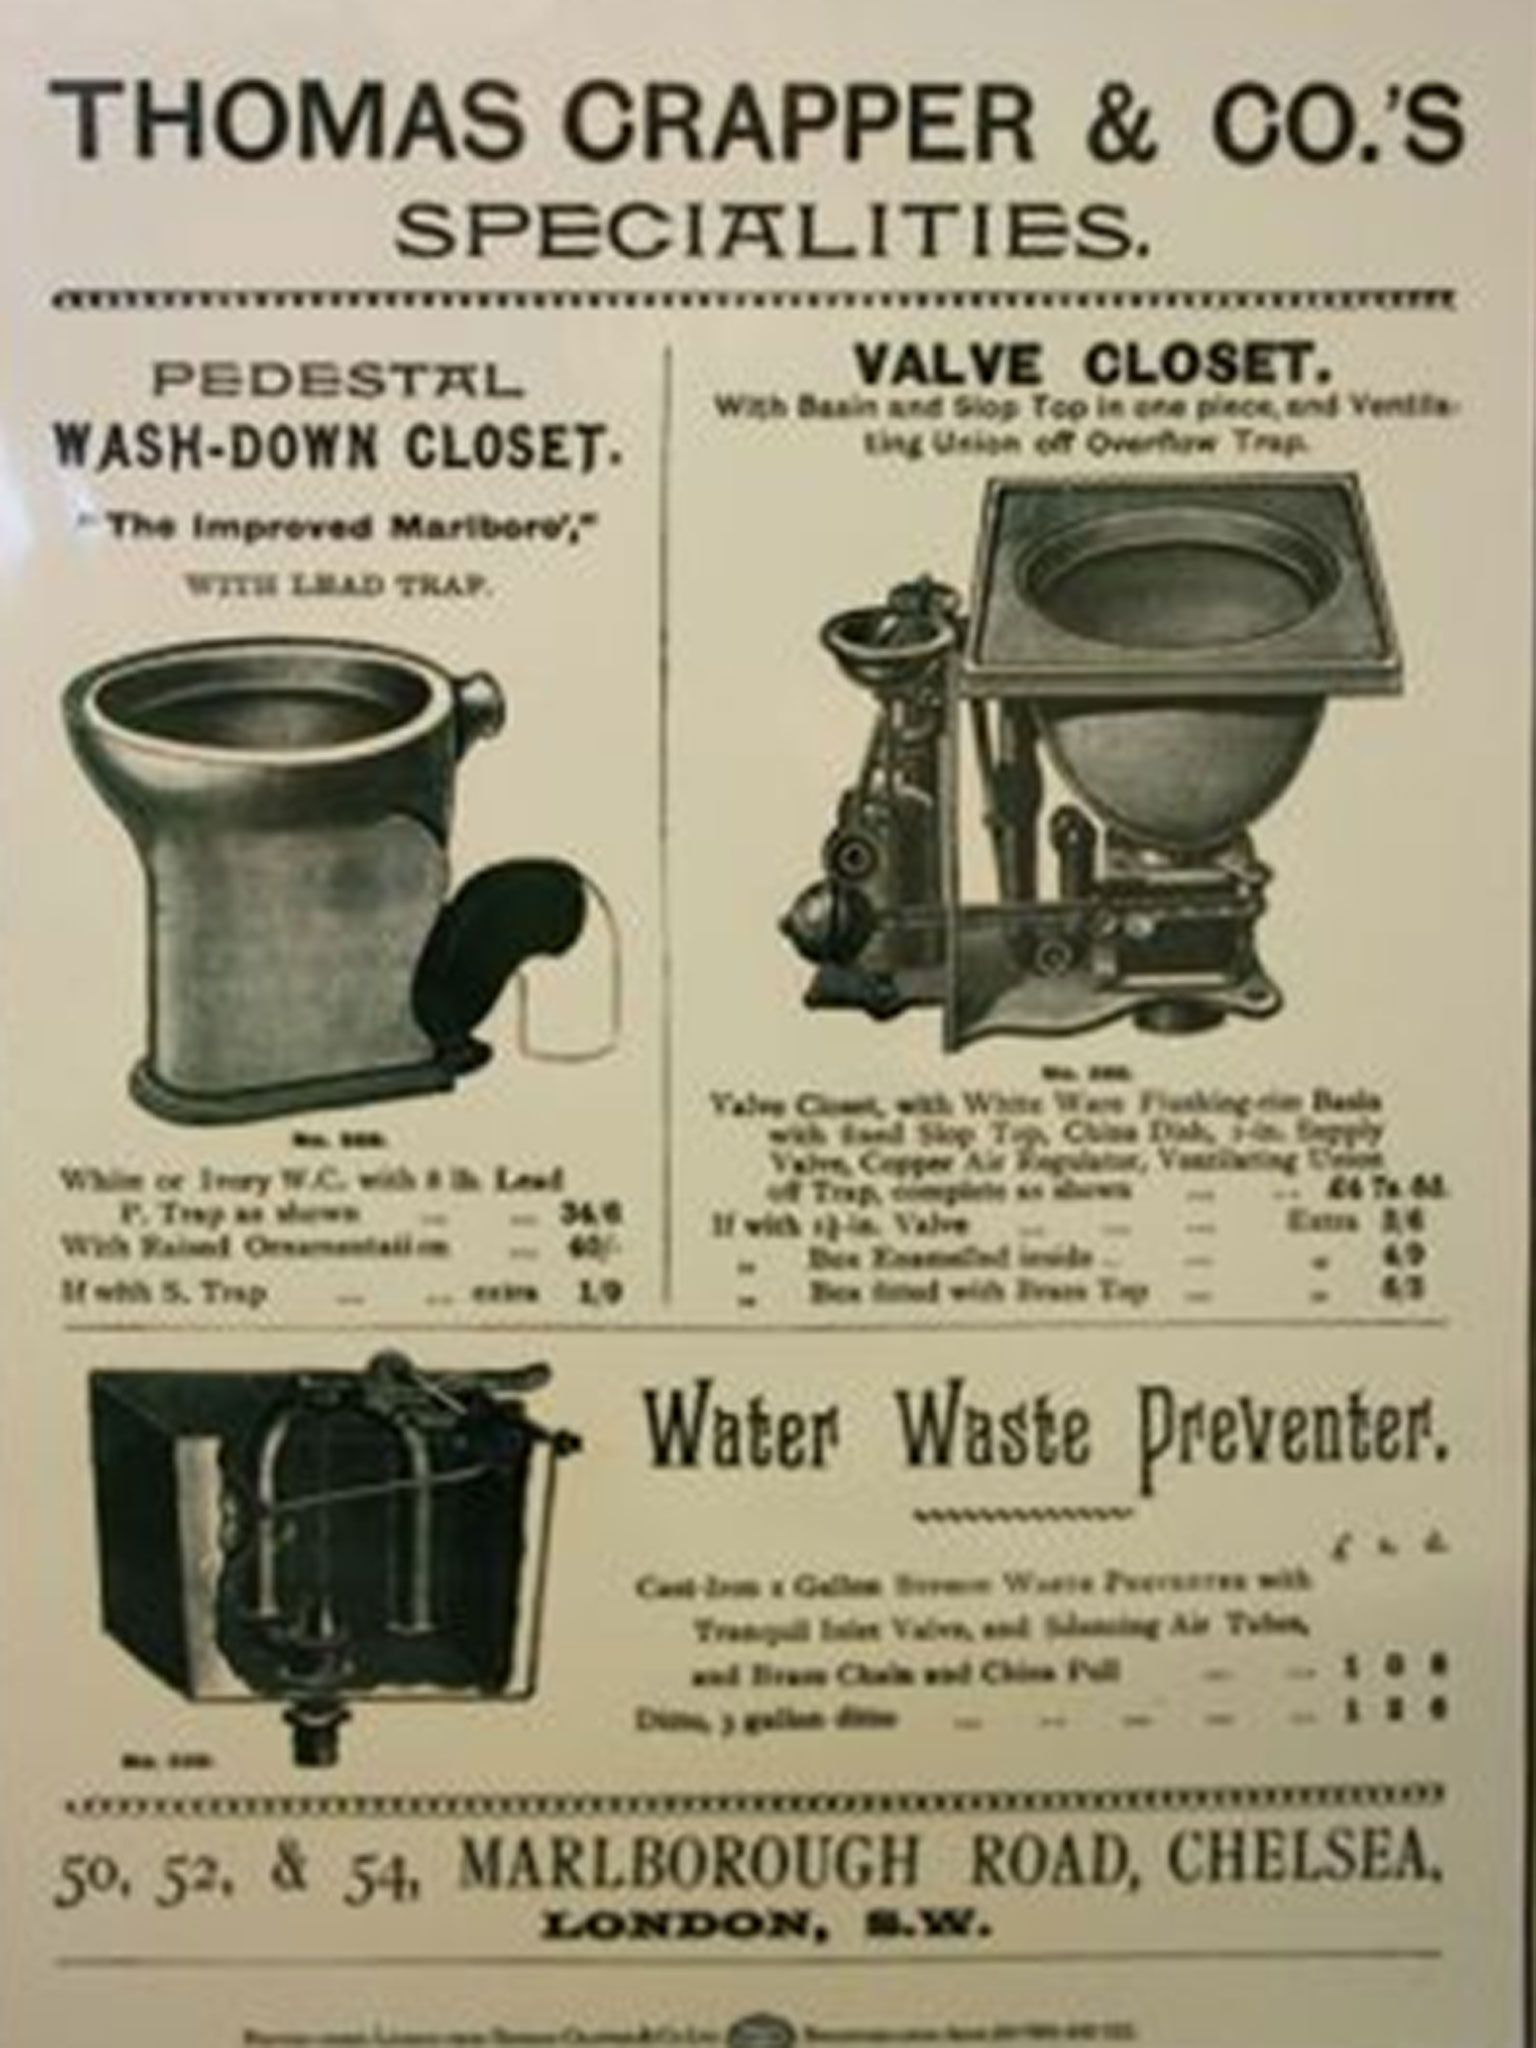 2013 marked the 150 years of plumber crapper s invention which would greatly enhance and